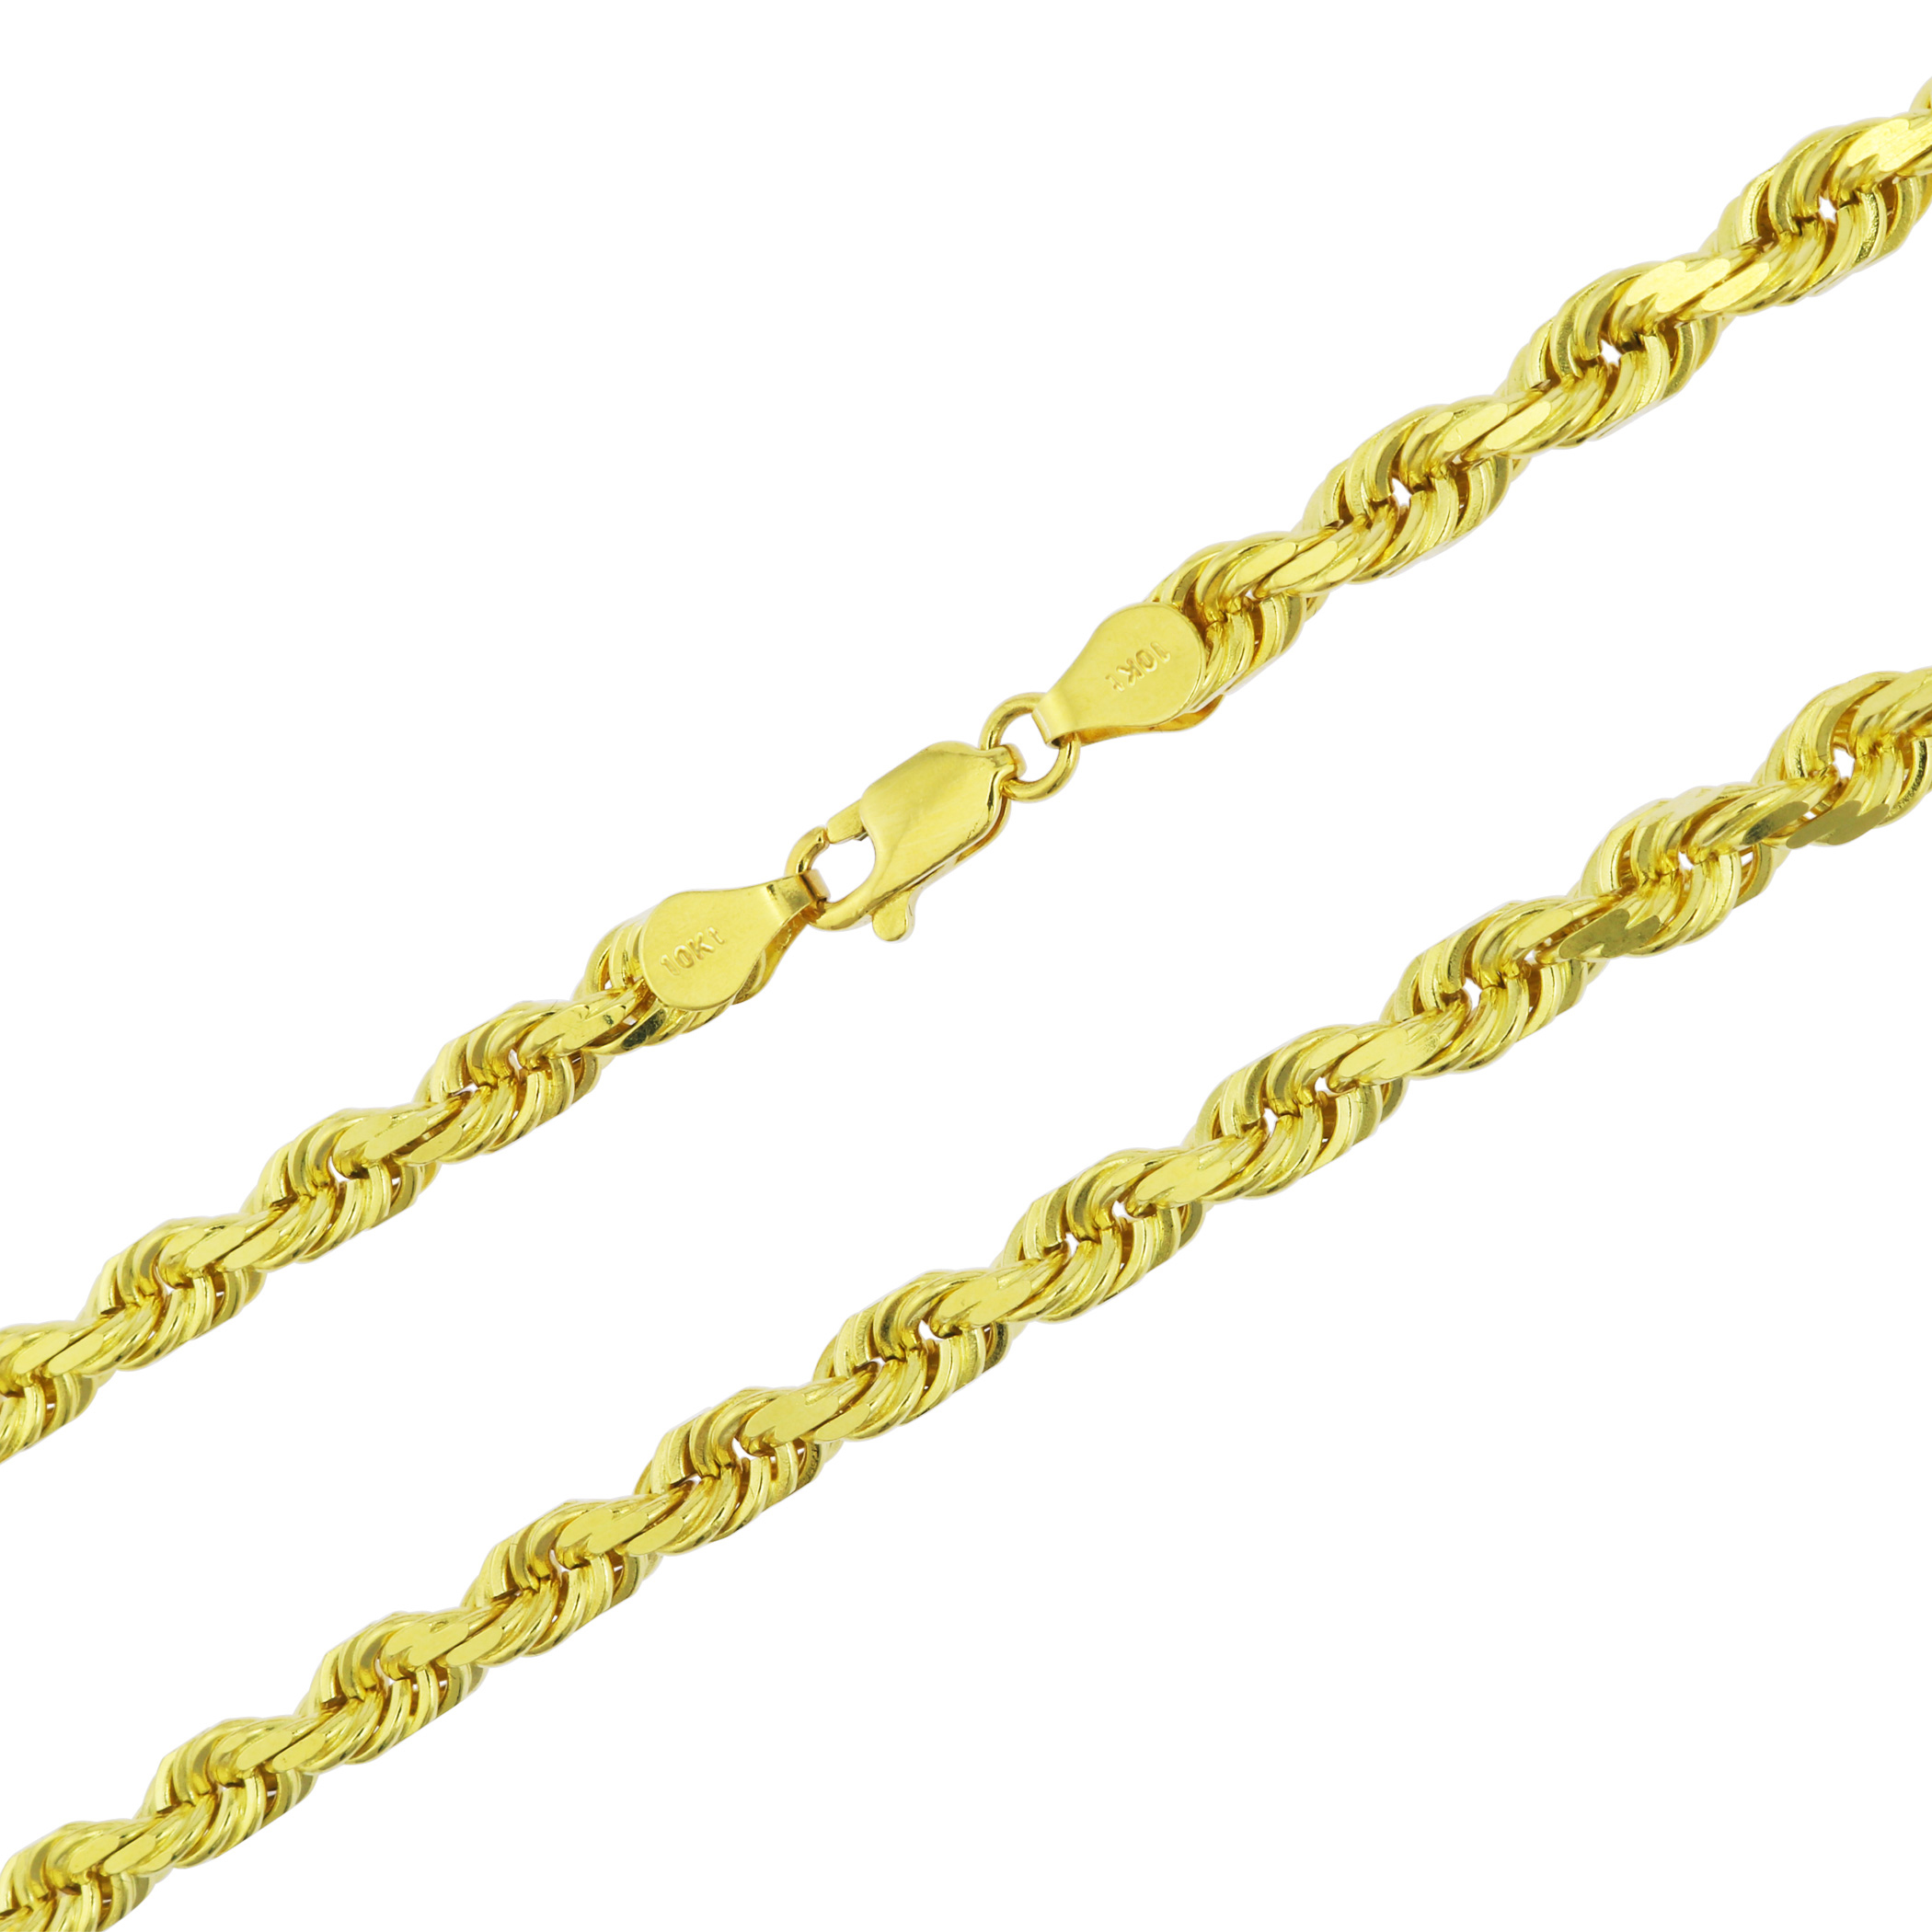 Solid-10k-Yellow-Gold-Mens-Thick-6mm-Diamond-Cut-Rope-Chain-Necklace-20-034-30-034 thumbnail 21